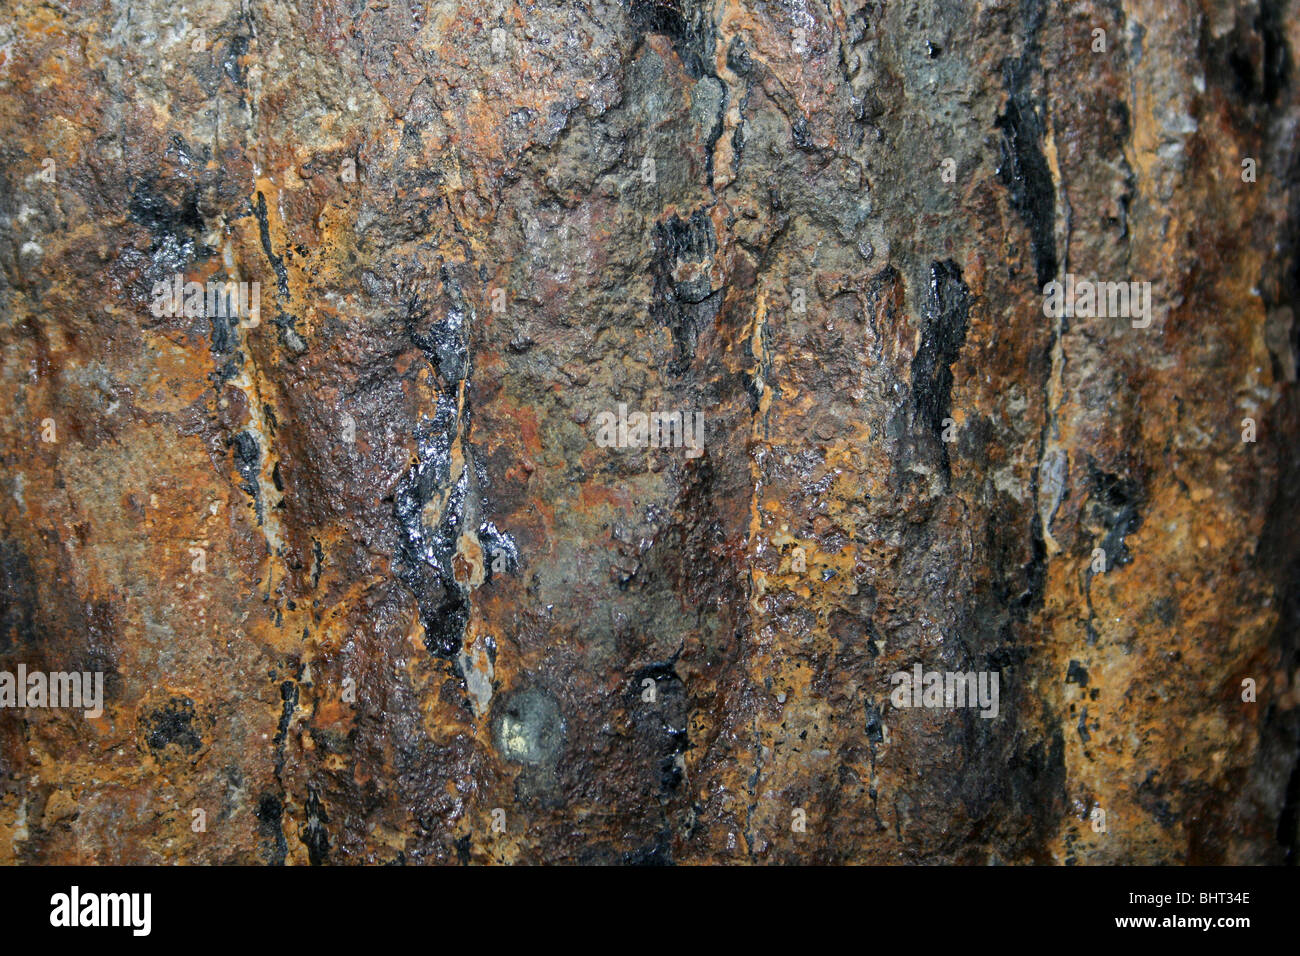 Fossilised Wood Ochre Color - Stock Image